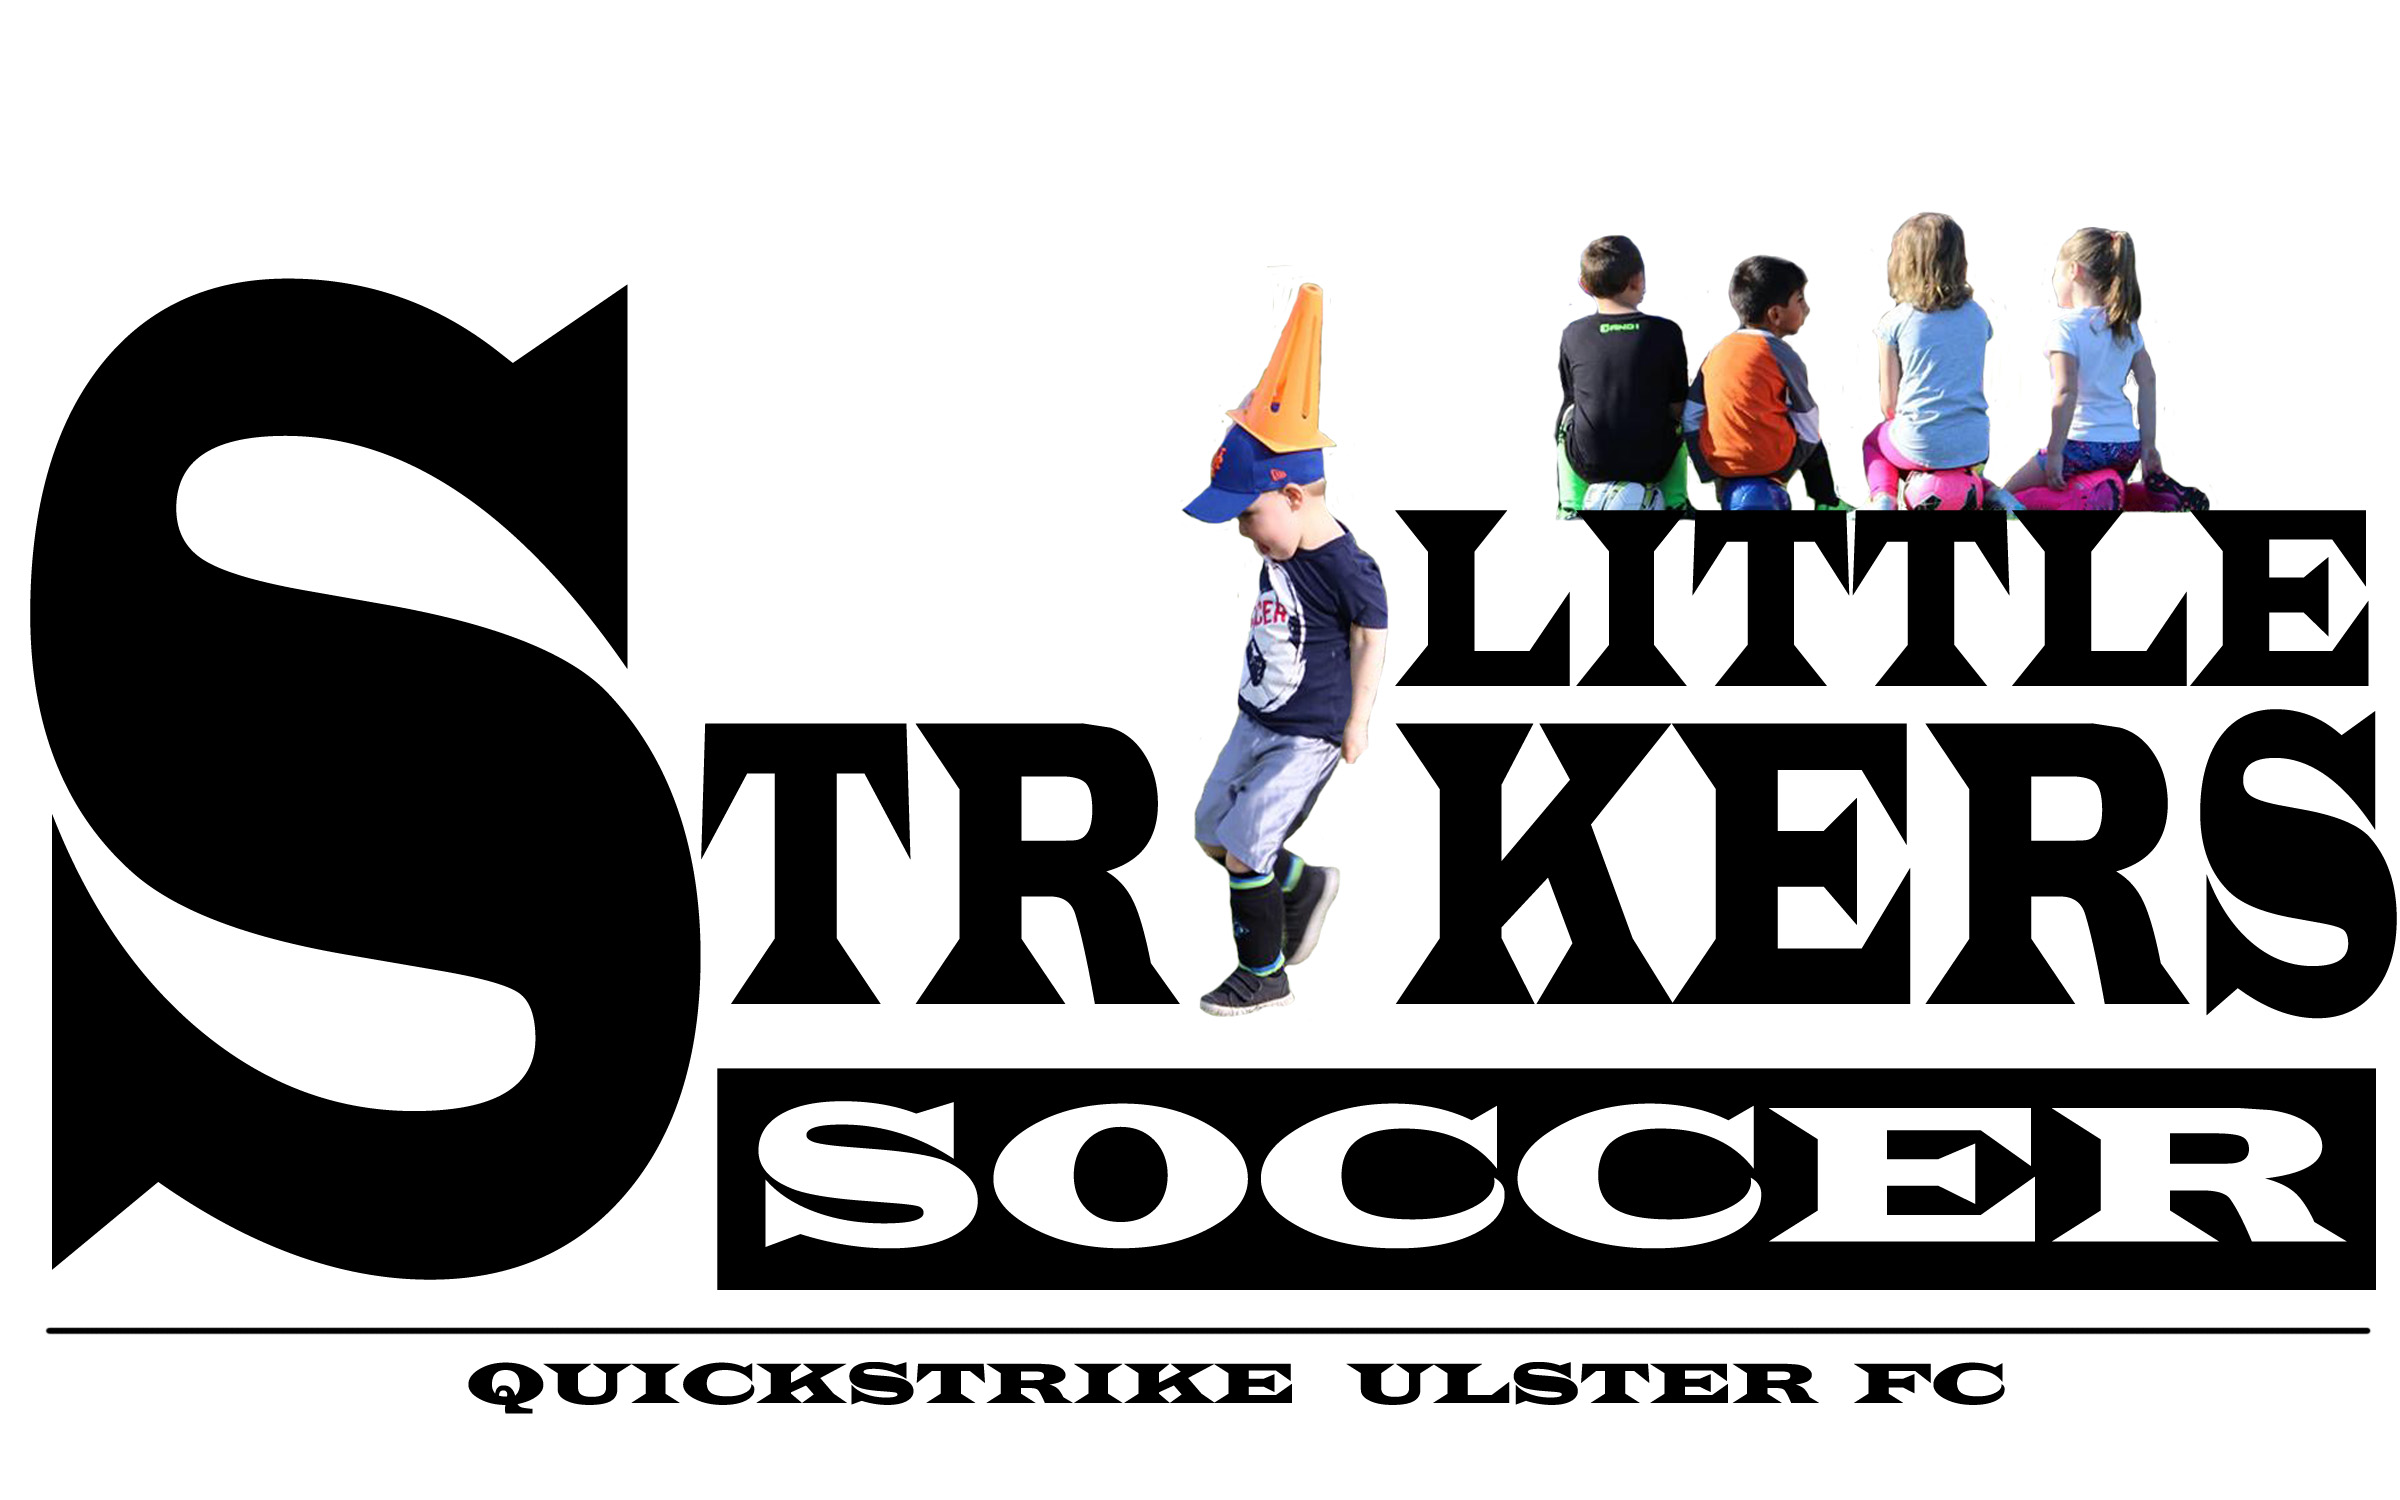 Littlestrikers Program Overview